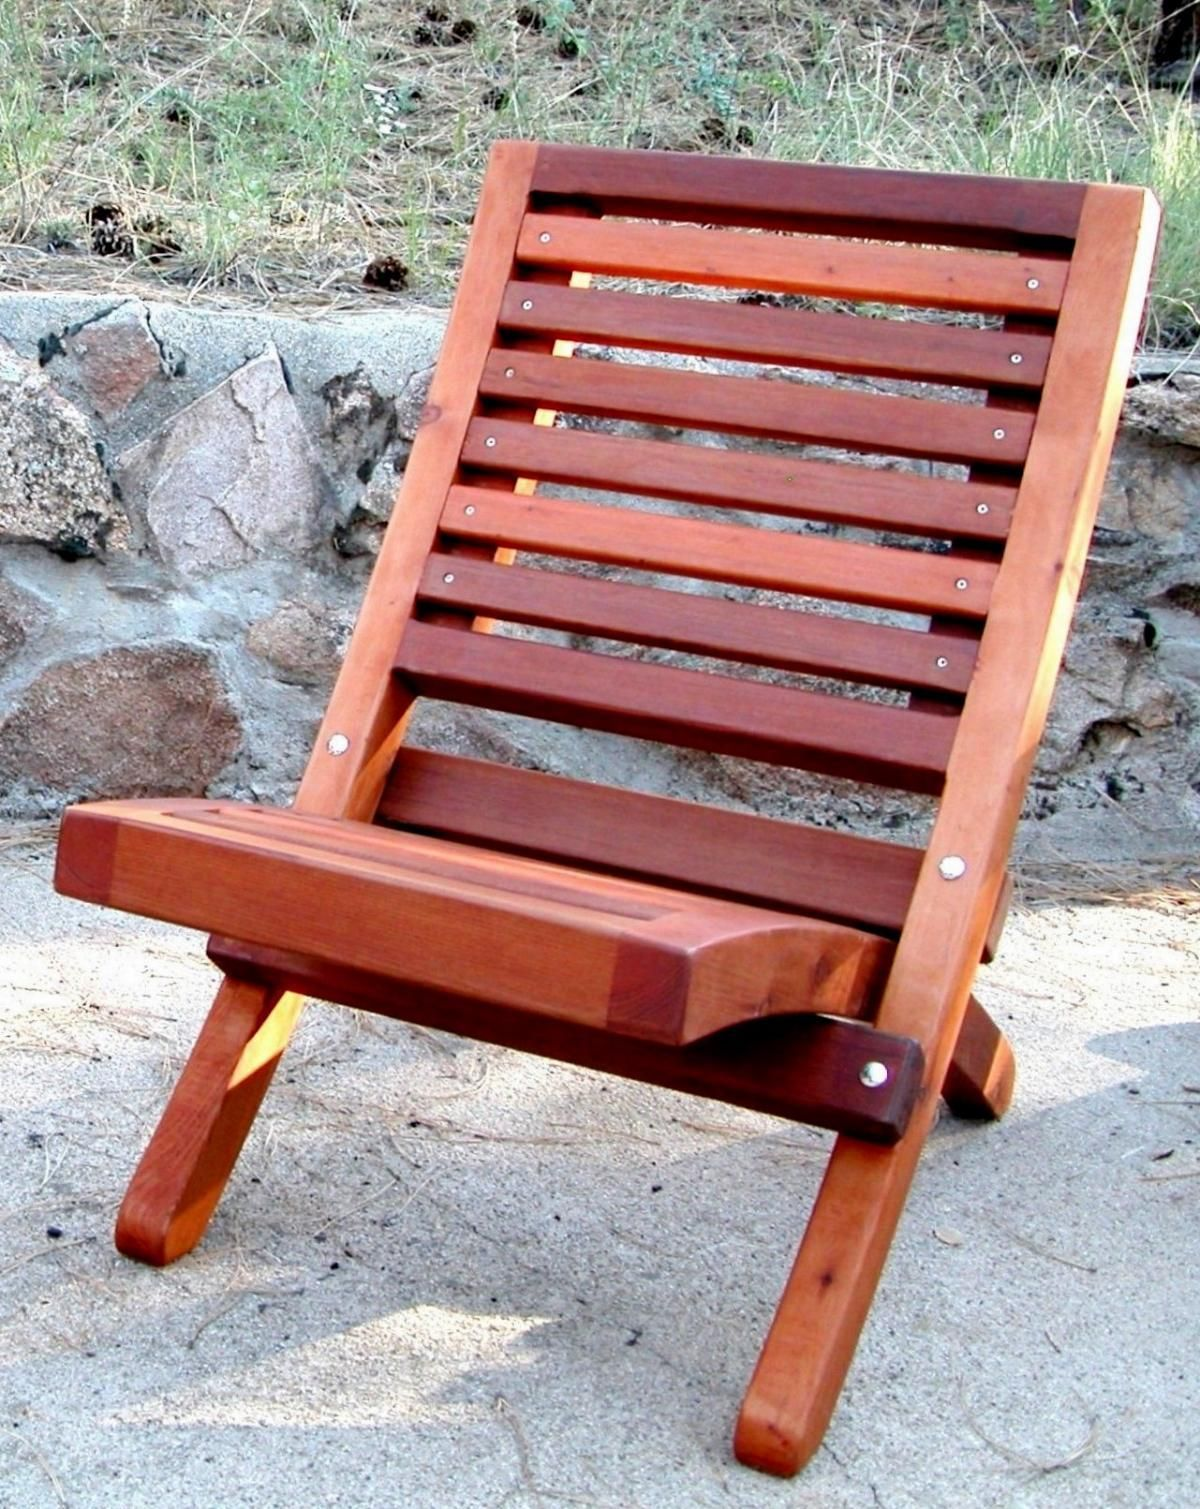 Portable Beach Chair Options Old Growth Redwood Transpa Premium Sealant